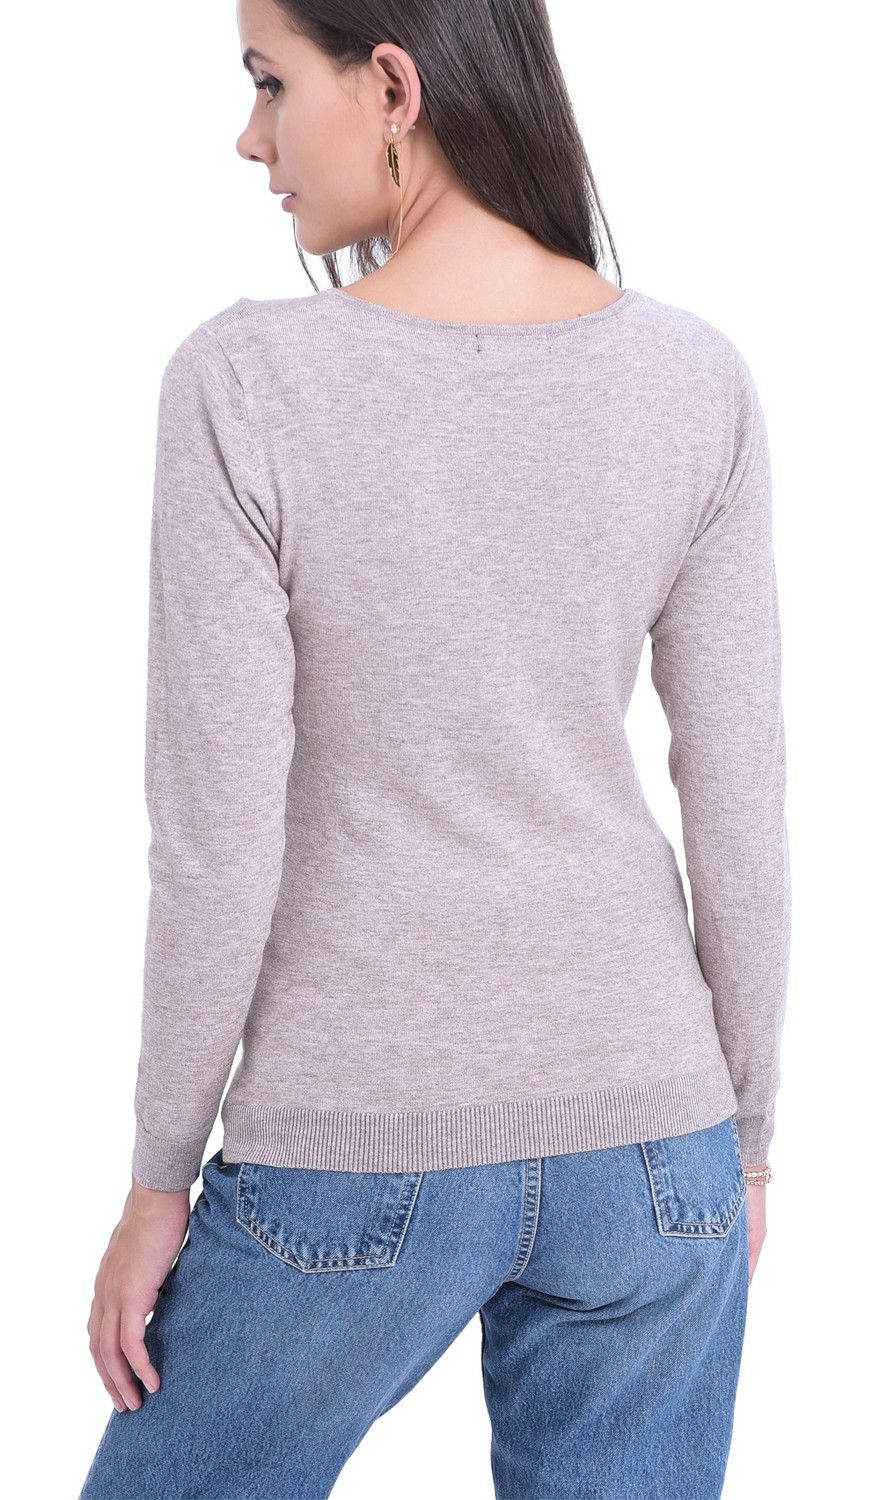 William De Faye V-Neck Long Sleeve Sweater in Beige